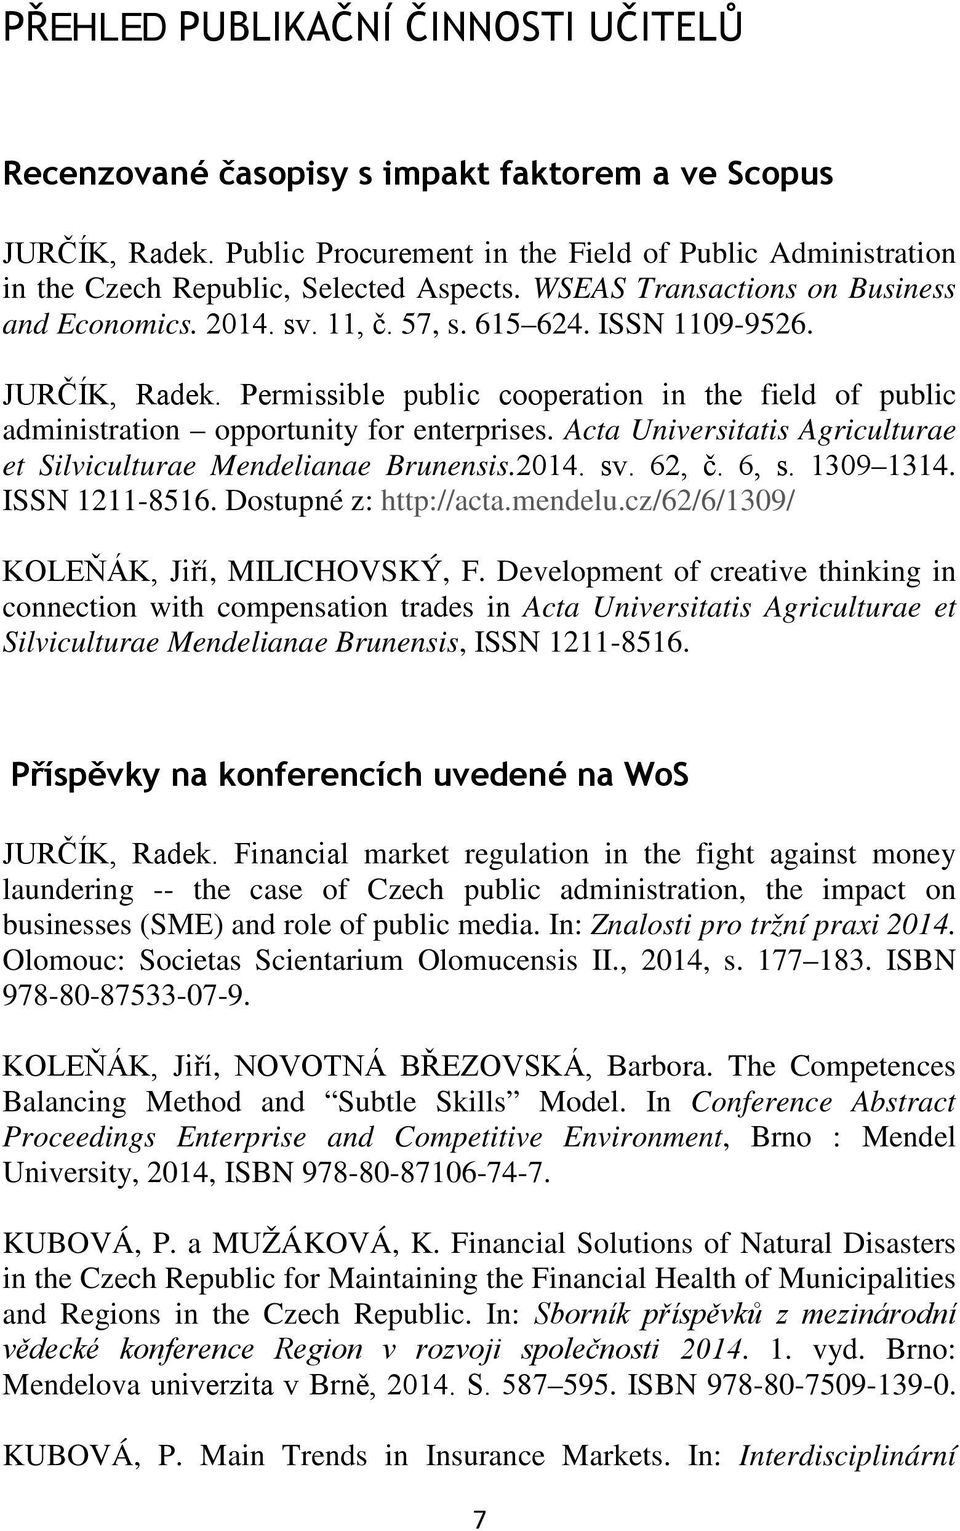 Permissible public cooperation in the field of public administration opportunity for enterprises. Acta Universitatis Agriculturae et Silviculturae Mendelianae Brunensis.2014. sv. 62, č. 6, s.